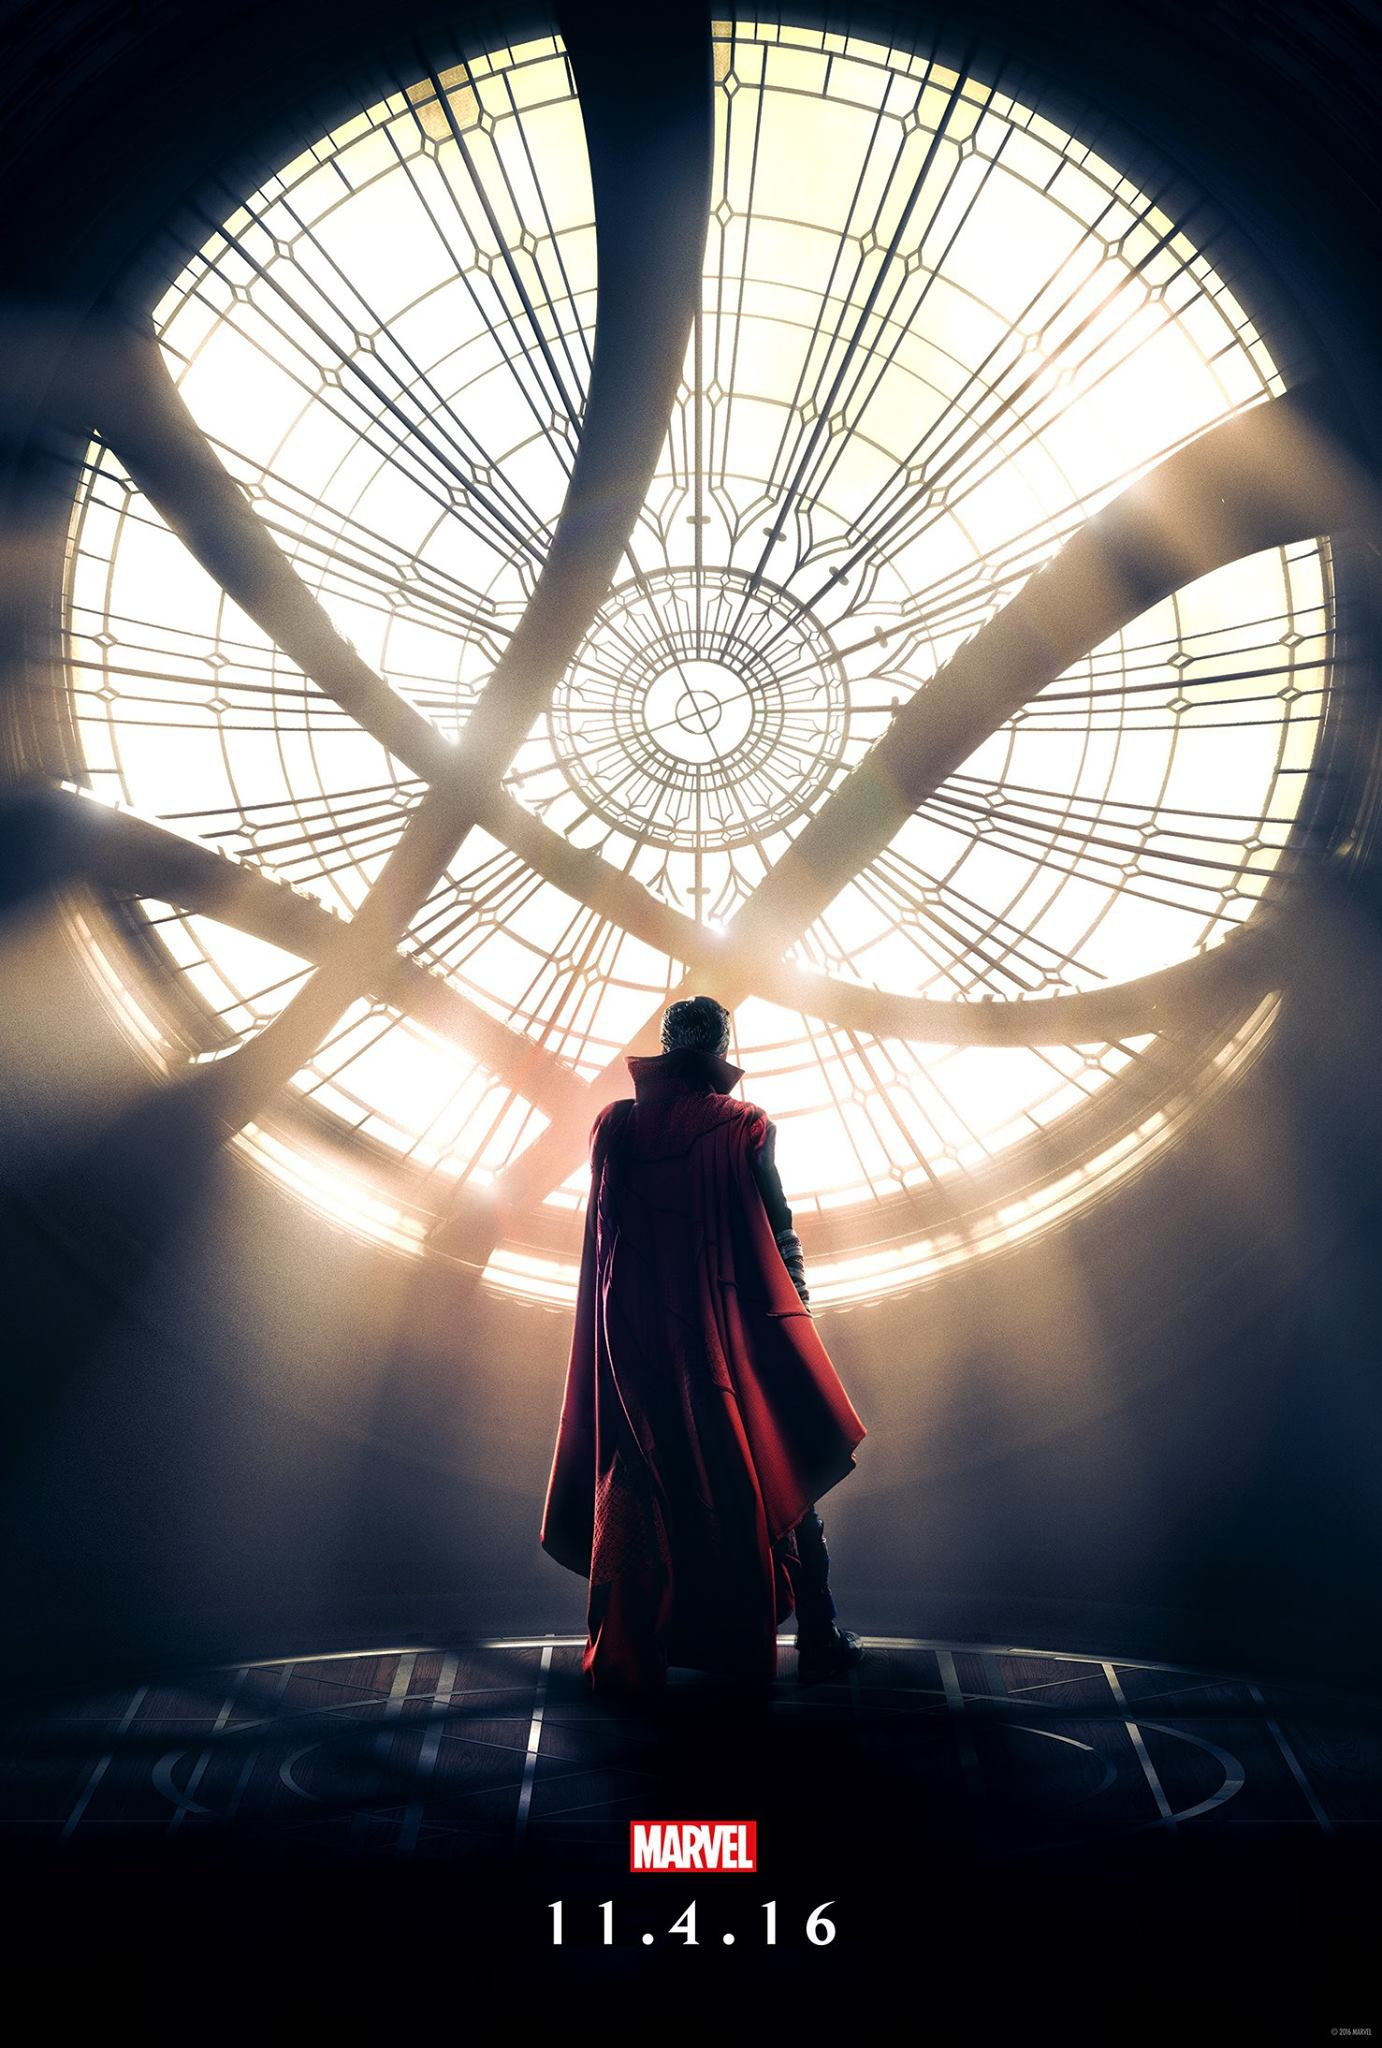 First Doctor Strange Poster Revealed 1